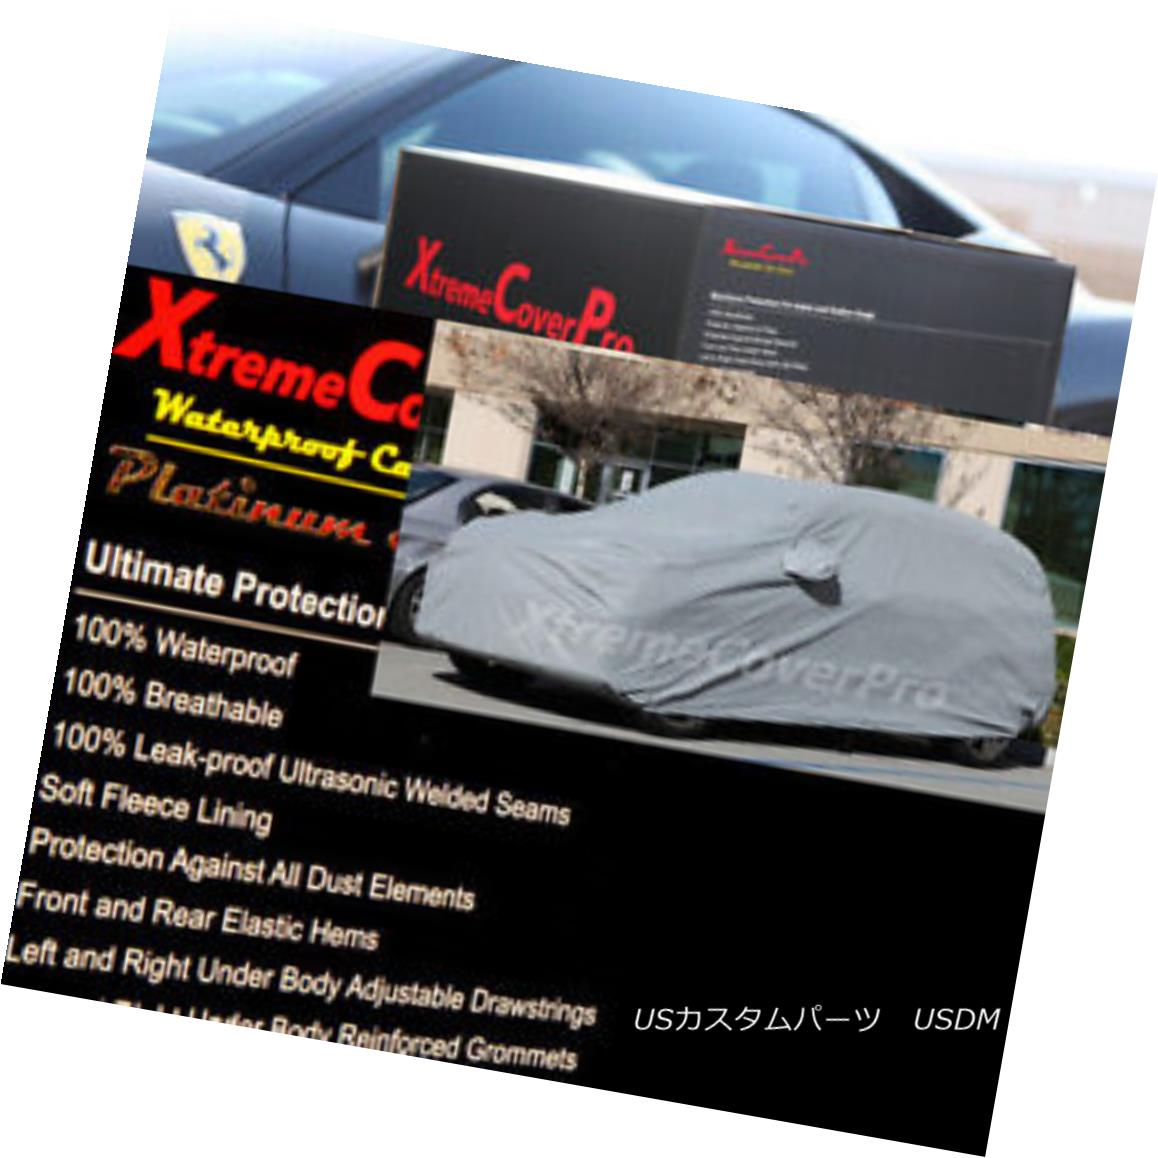 カーカバー 2016 2017 2018 TOYOTA SIENNA WATERPROOF CAR COVER W/MIRROR POCKET - GREY 2016 2017 2018 TOYOTA SIENNA防水カーカバー付き/ミラーポケット - グレー